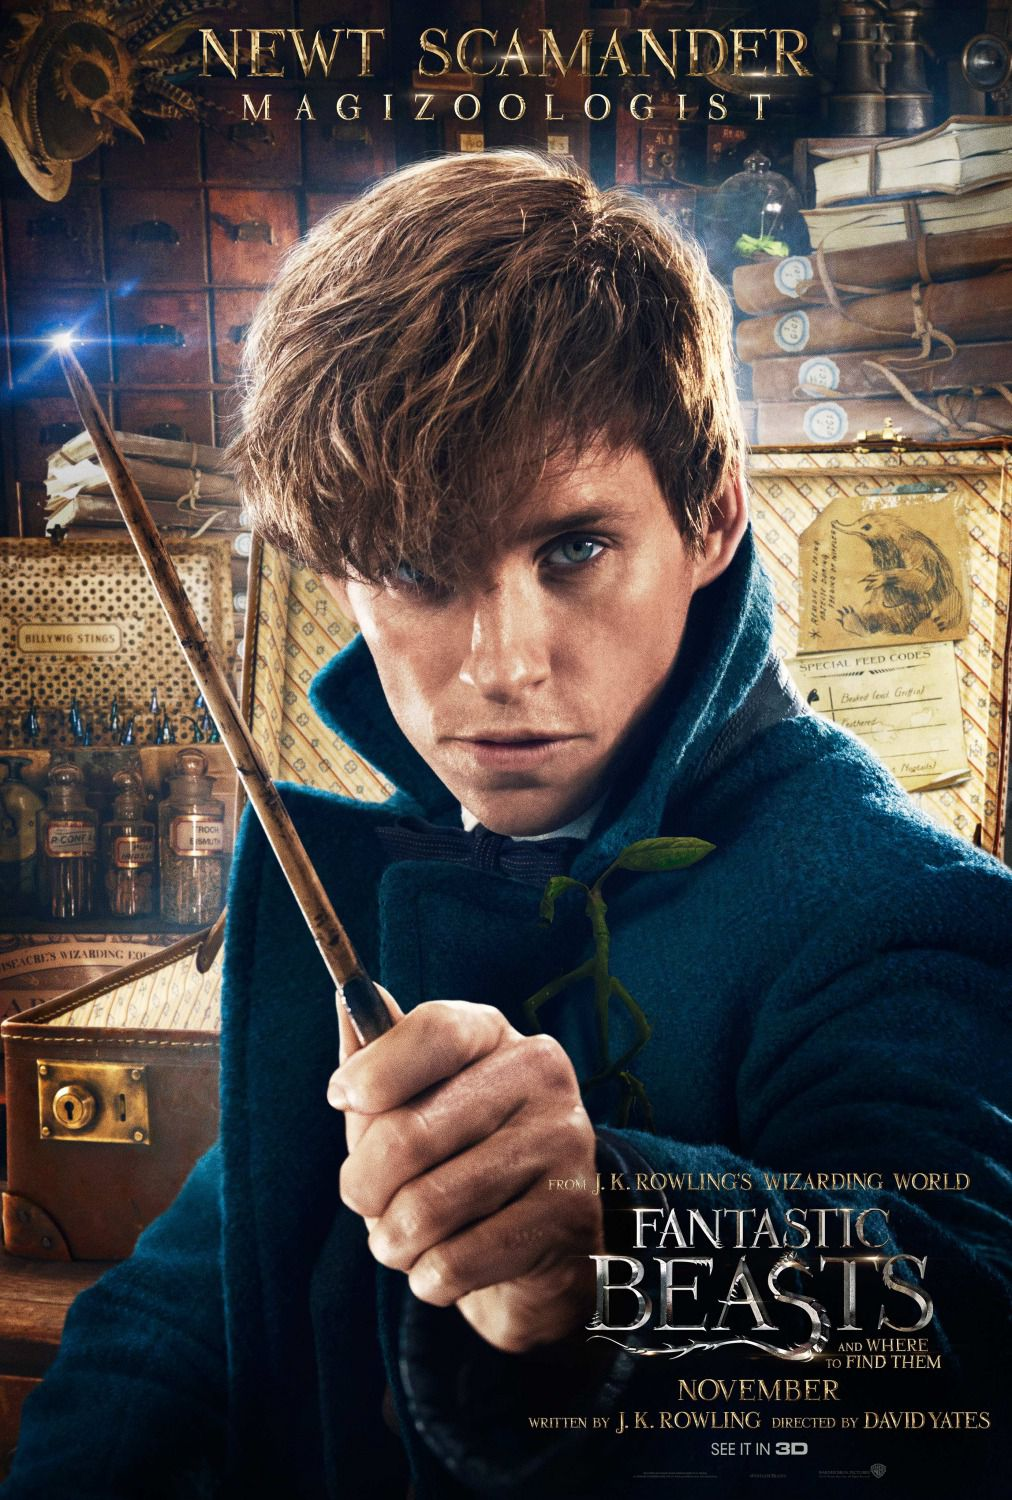 Newt Scamander Magizoologist